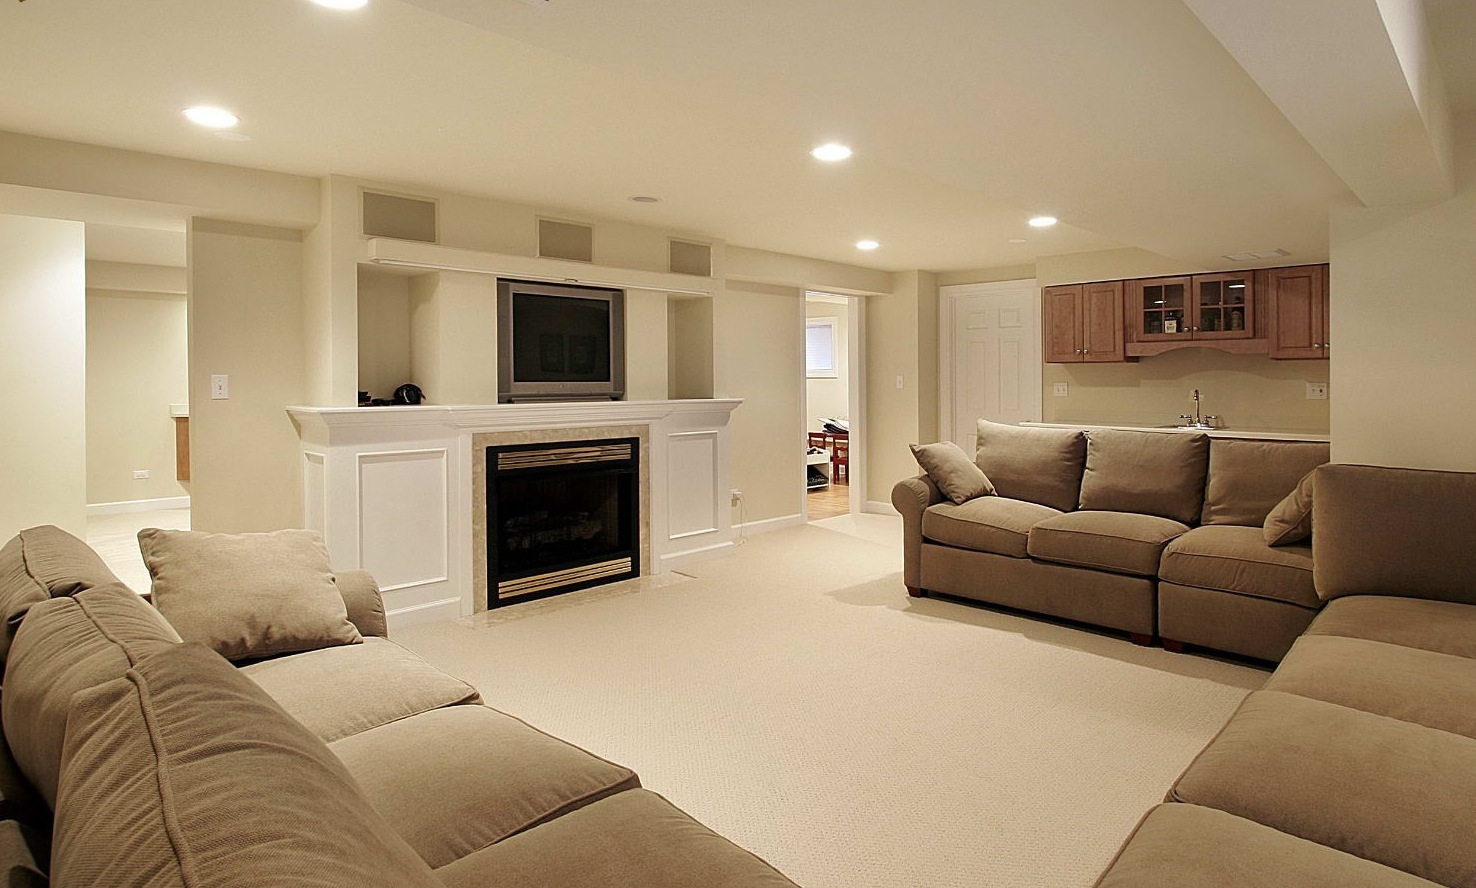 30 basement remodeling ideas inspiration - Basement Design Ideas Pictures